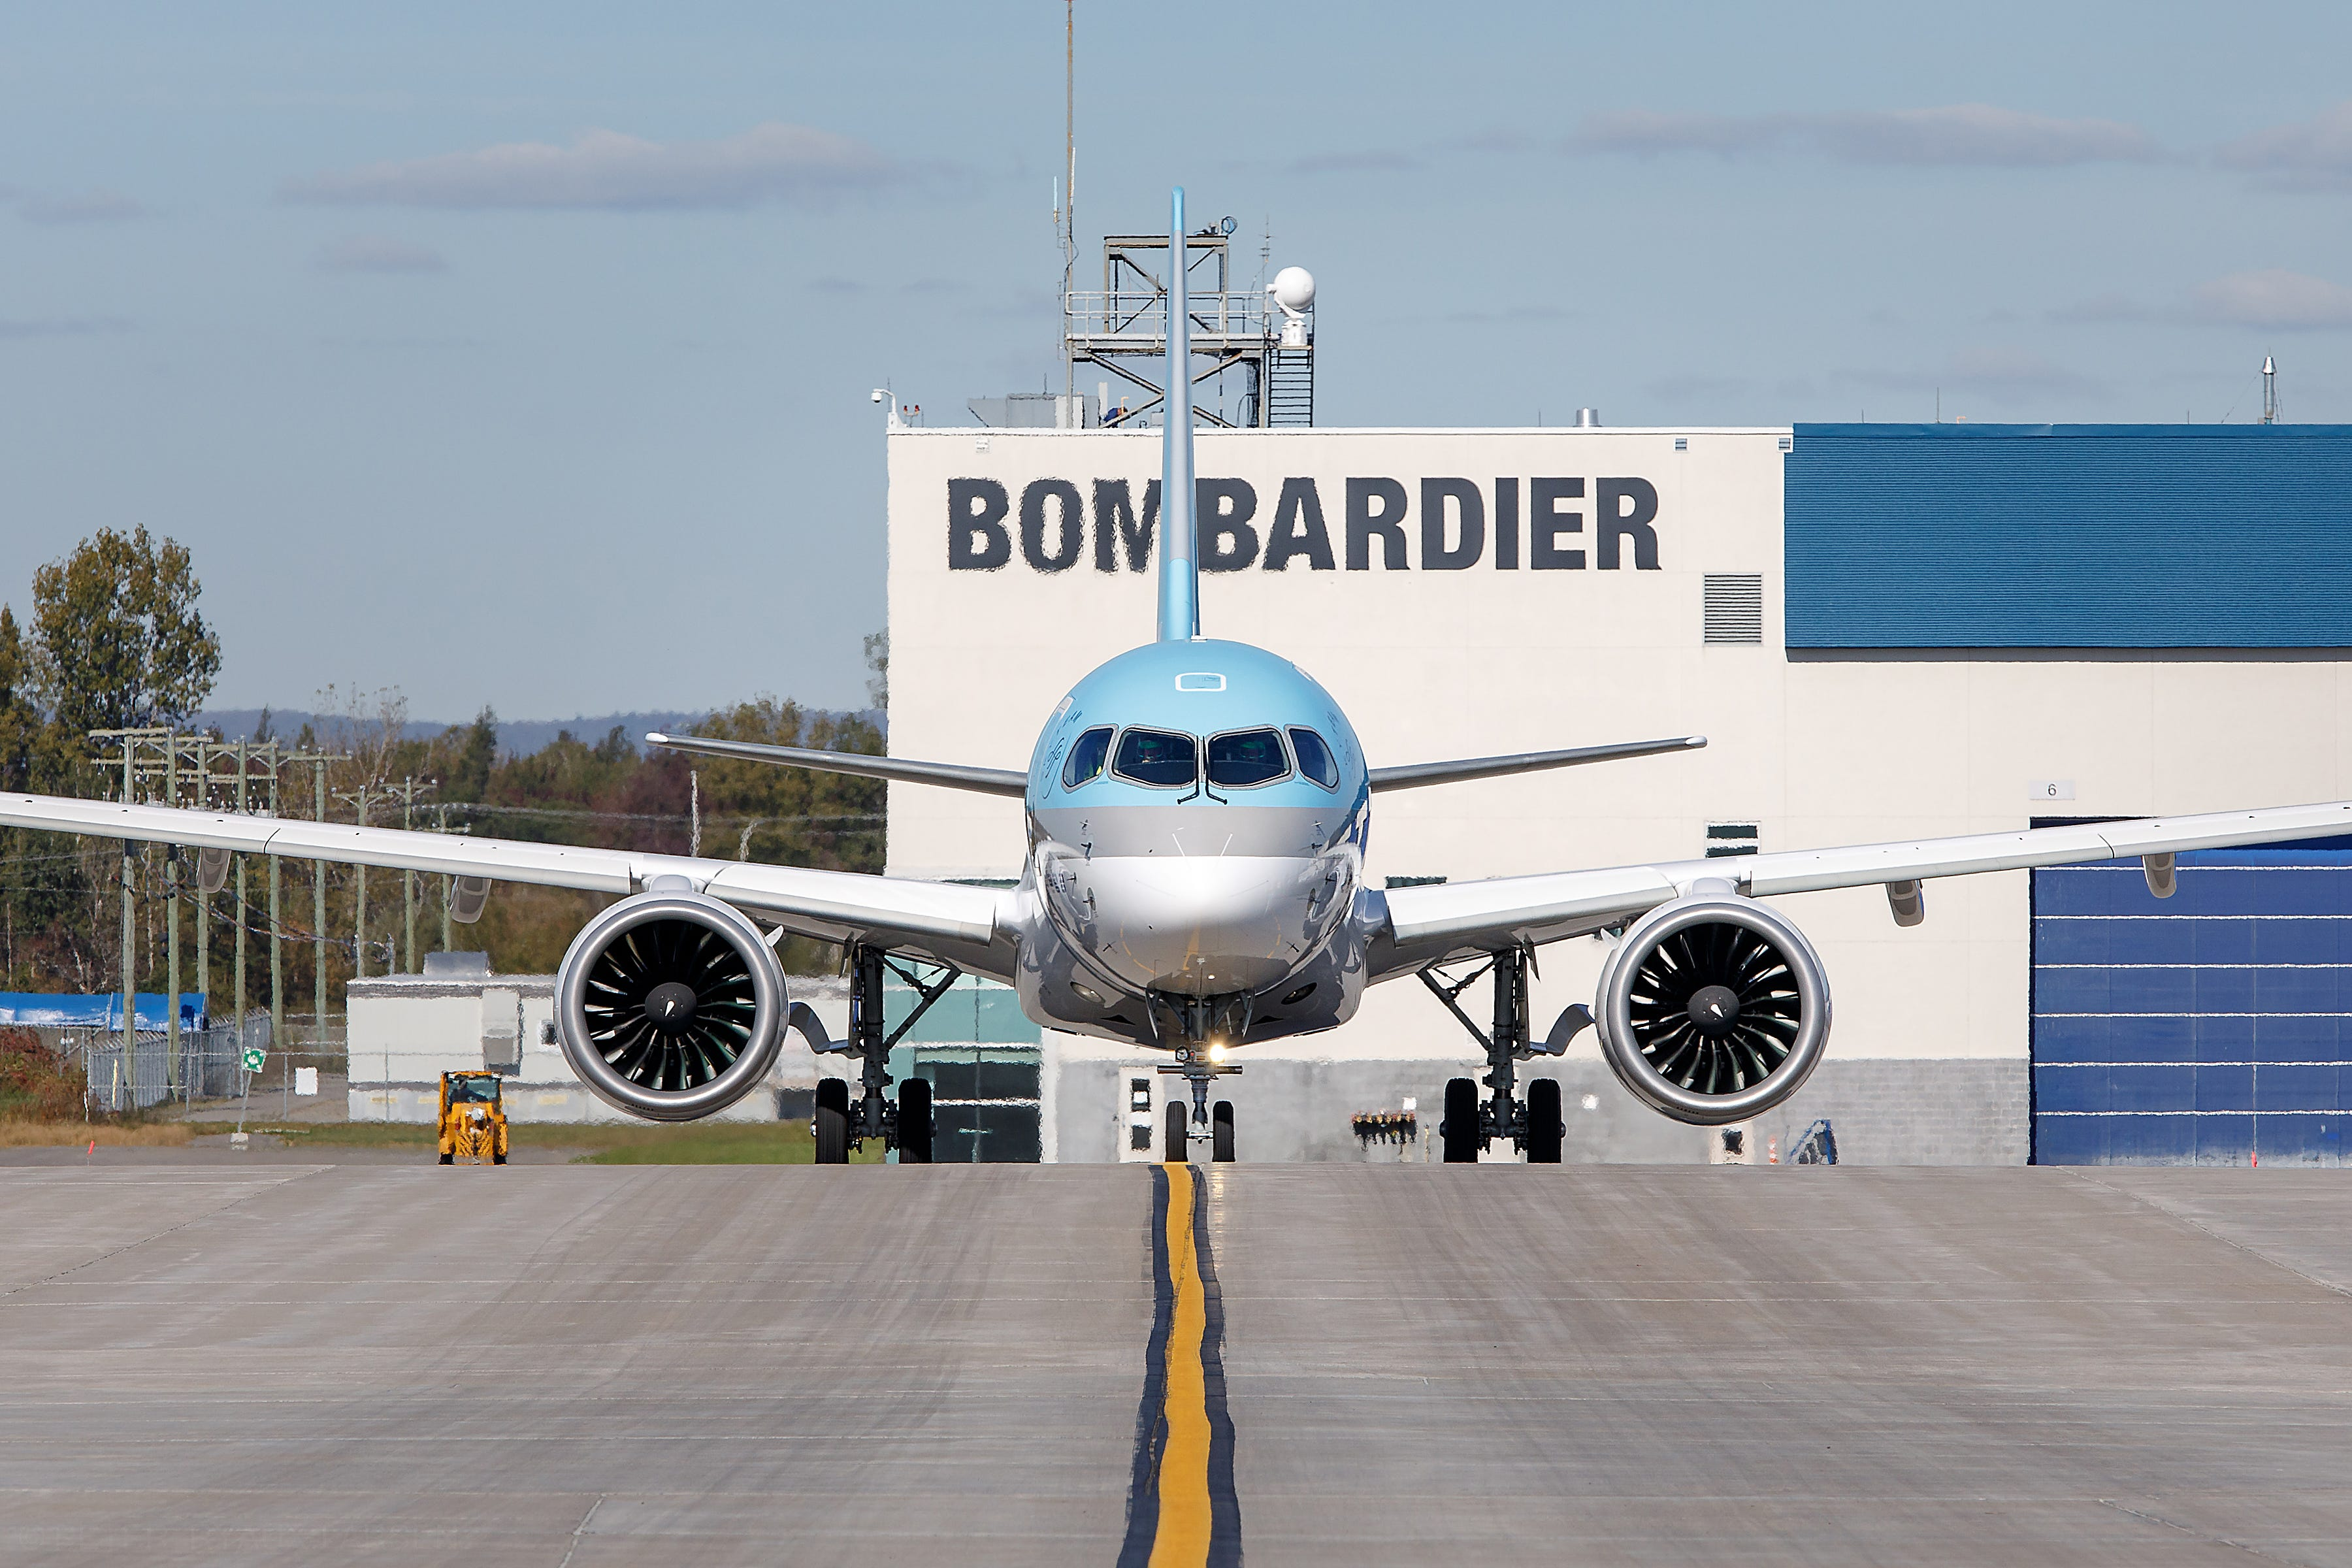 KOREAN AIR TAKES DELIVERY OF FIRST BOMBARDIER C SERIES AIRCRAFT